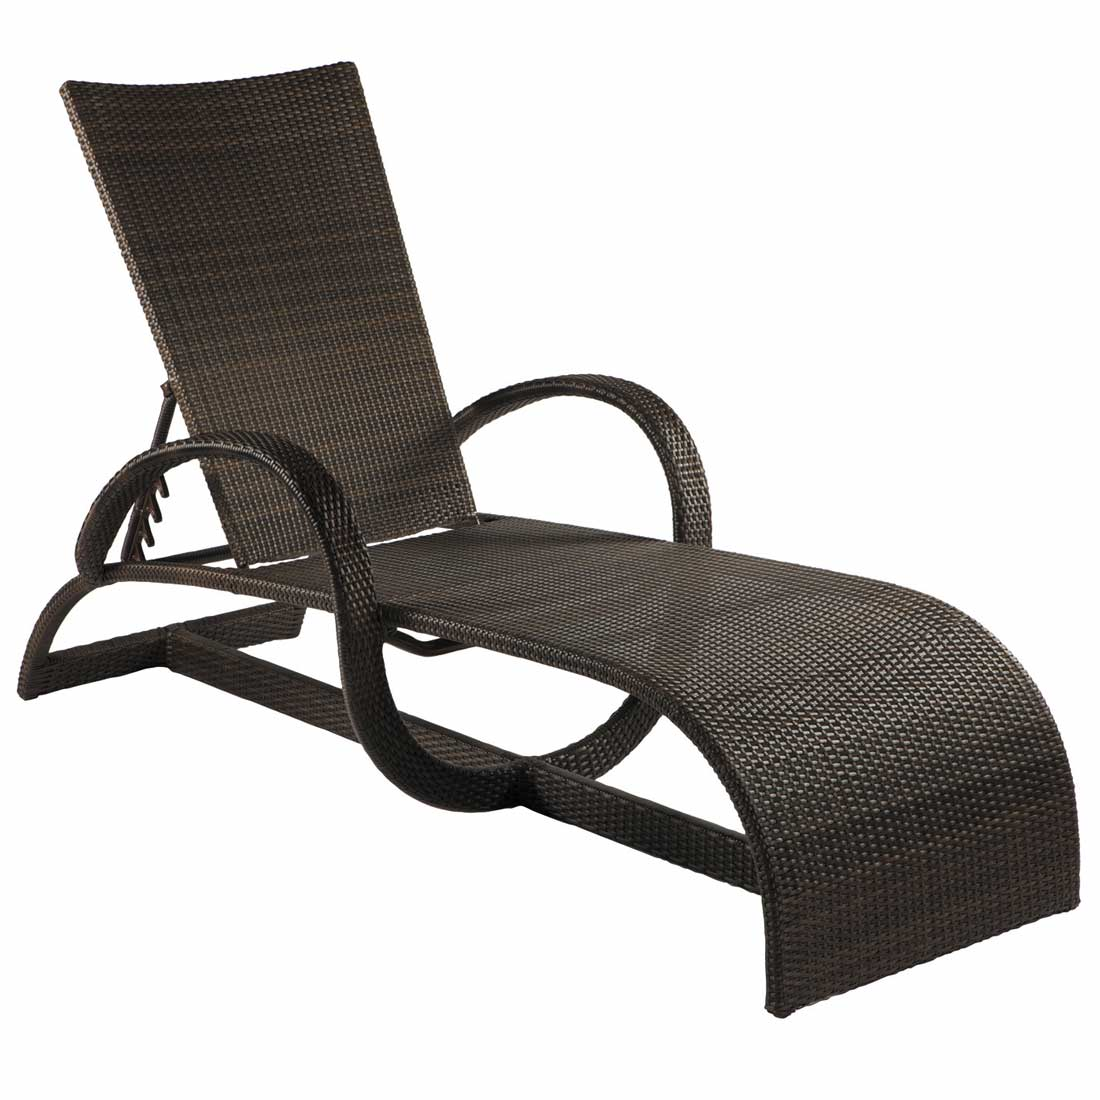 Halo patio chaise lounge chairs for Daybed bench chaise